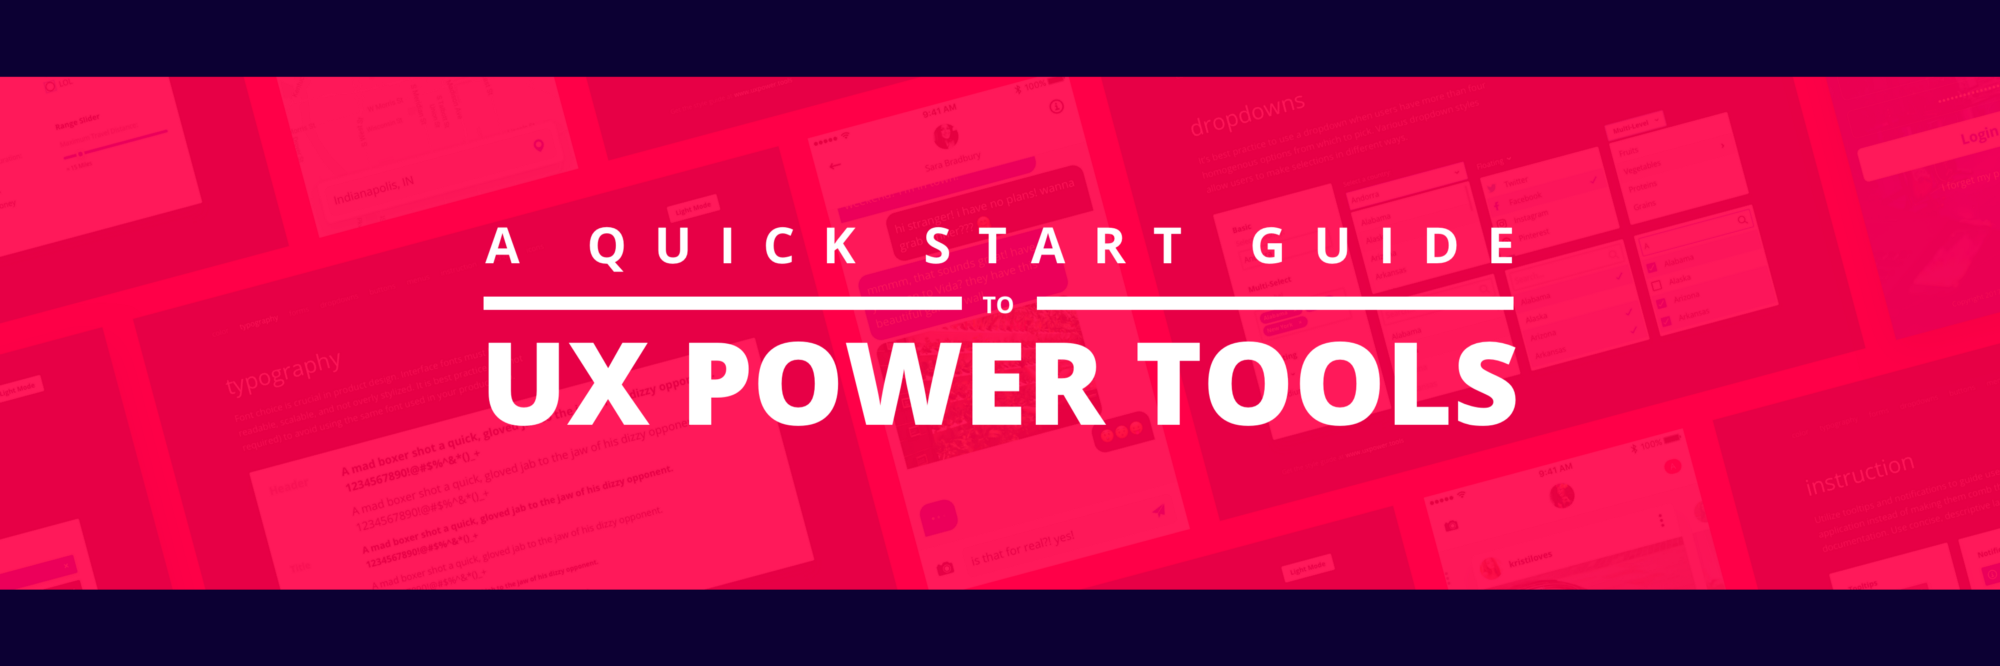 A Quick Start Guide to UX Power Tools – UX Power Tools – Medium